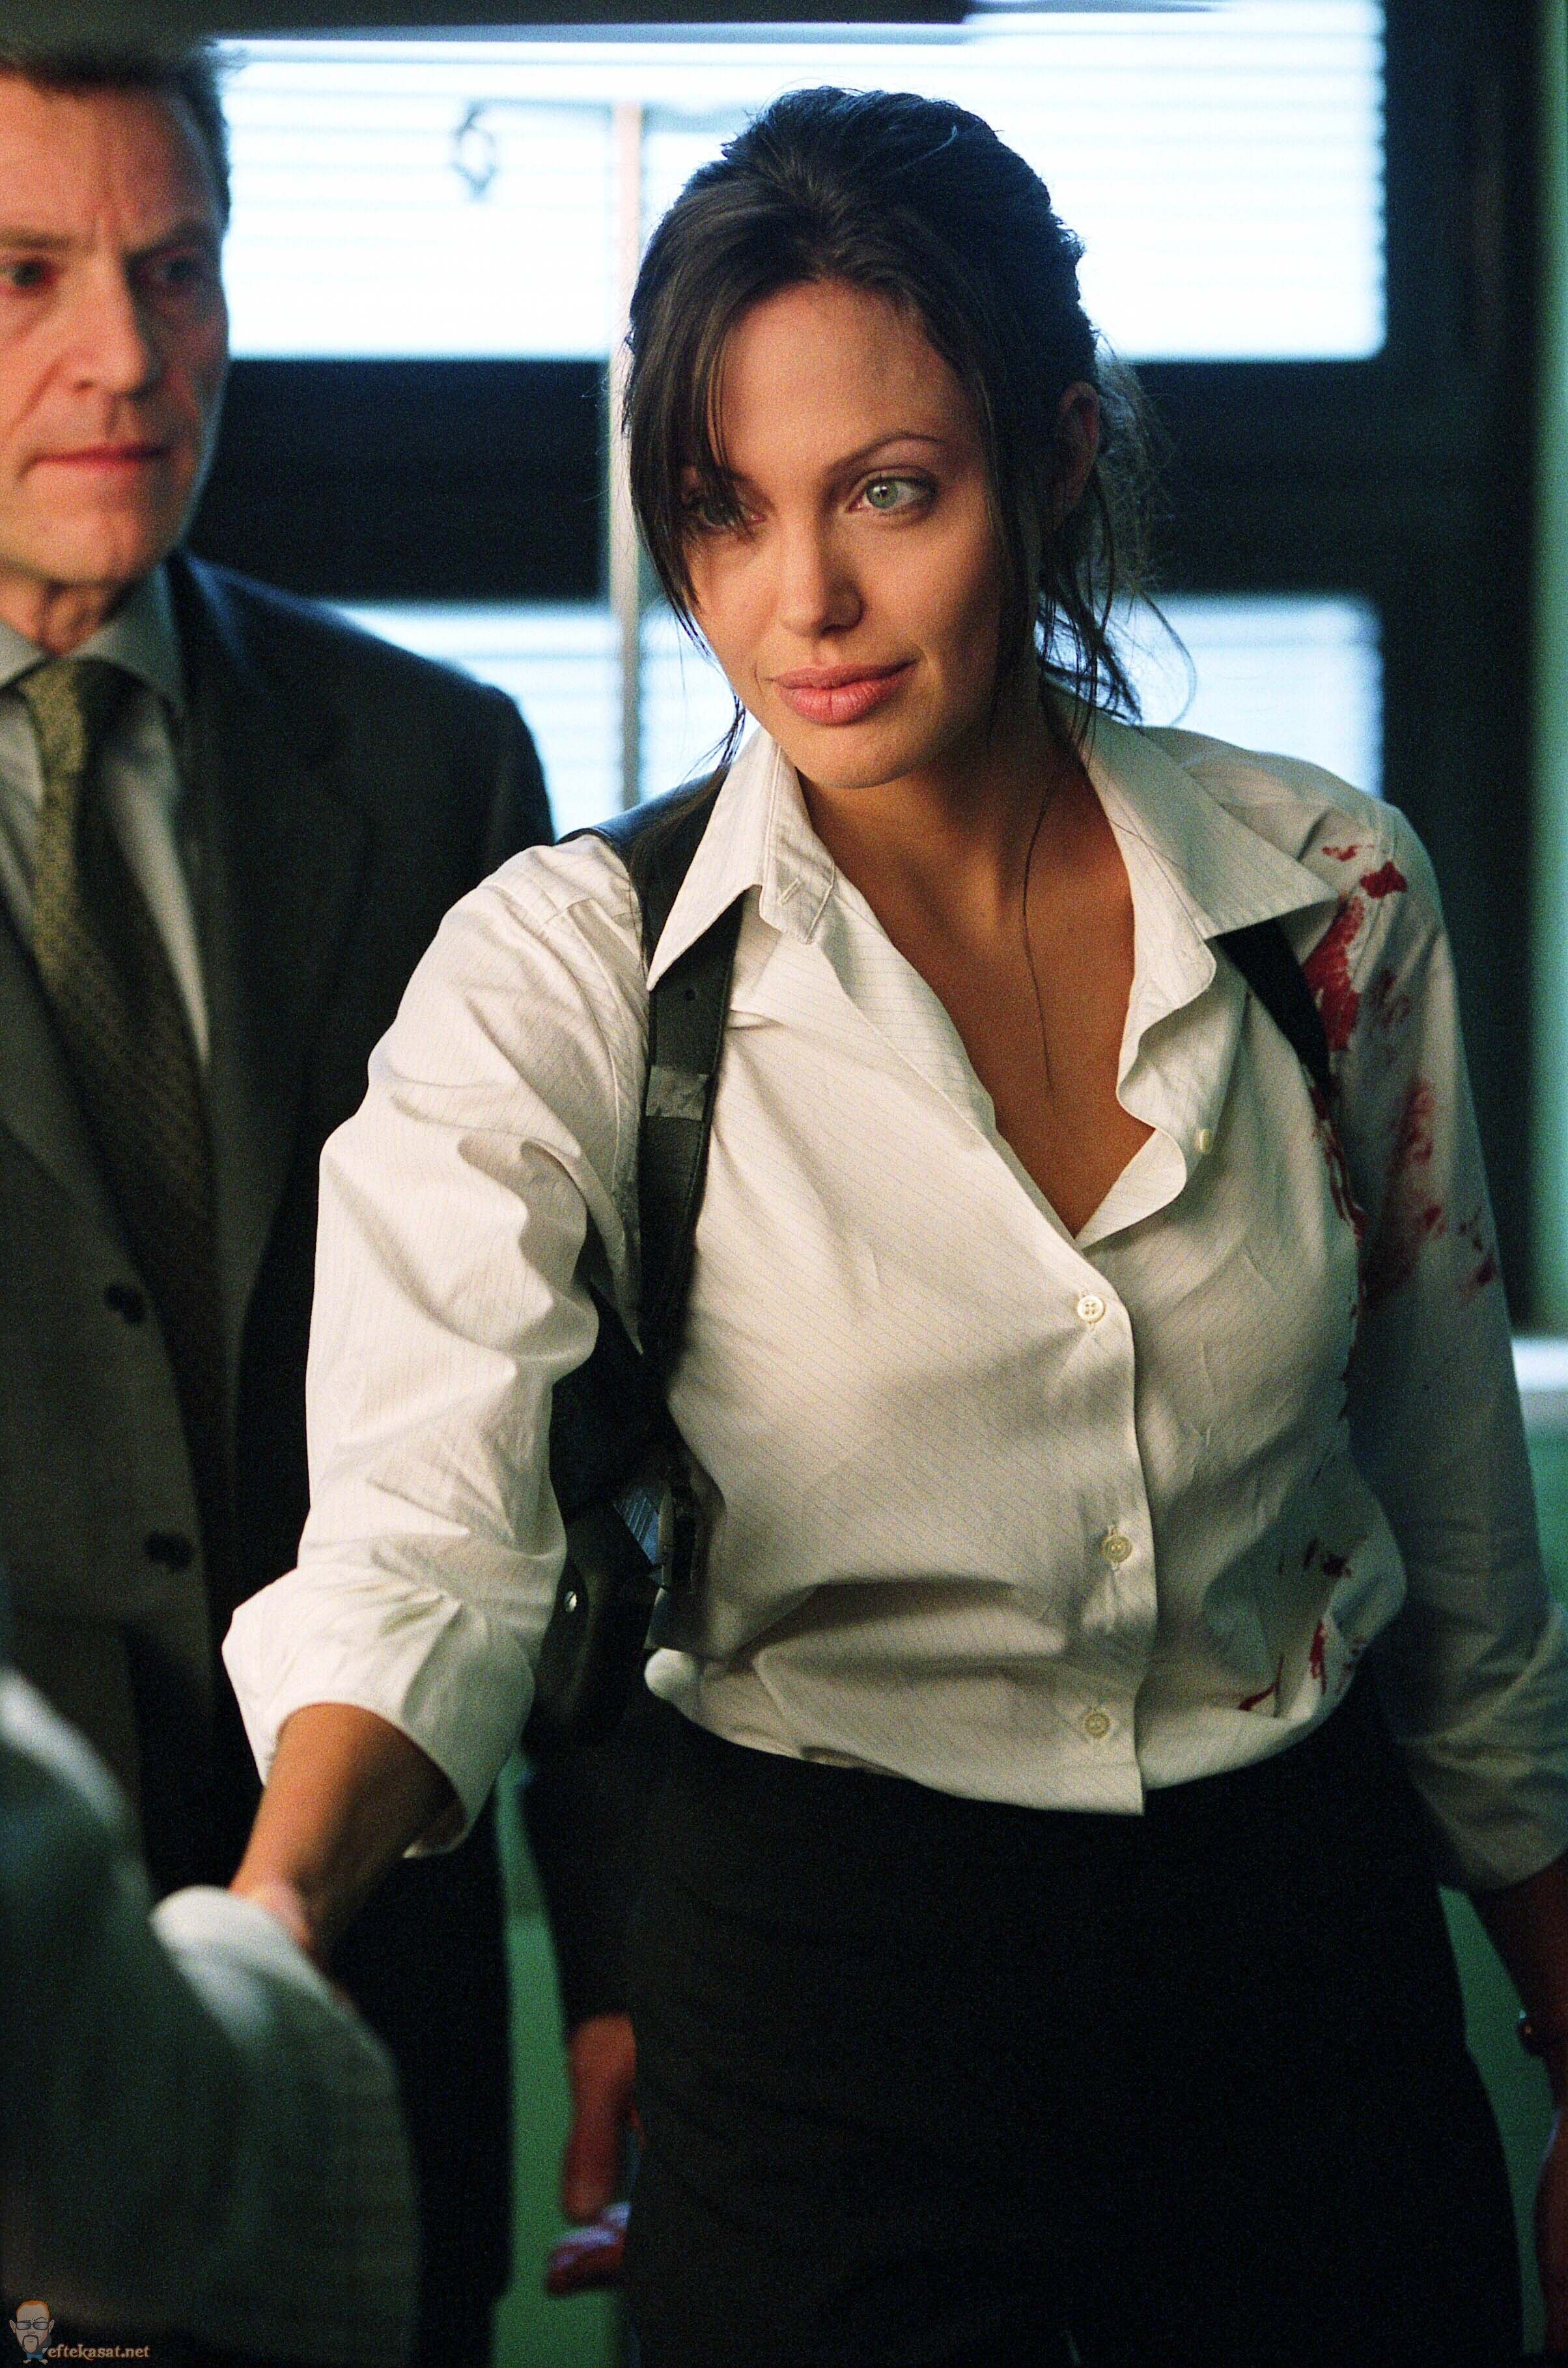 Angelina Jolie In Taking Lives 2004 With Images Angelina